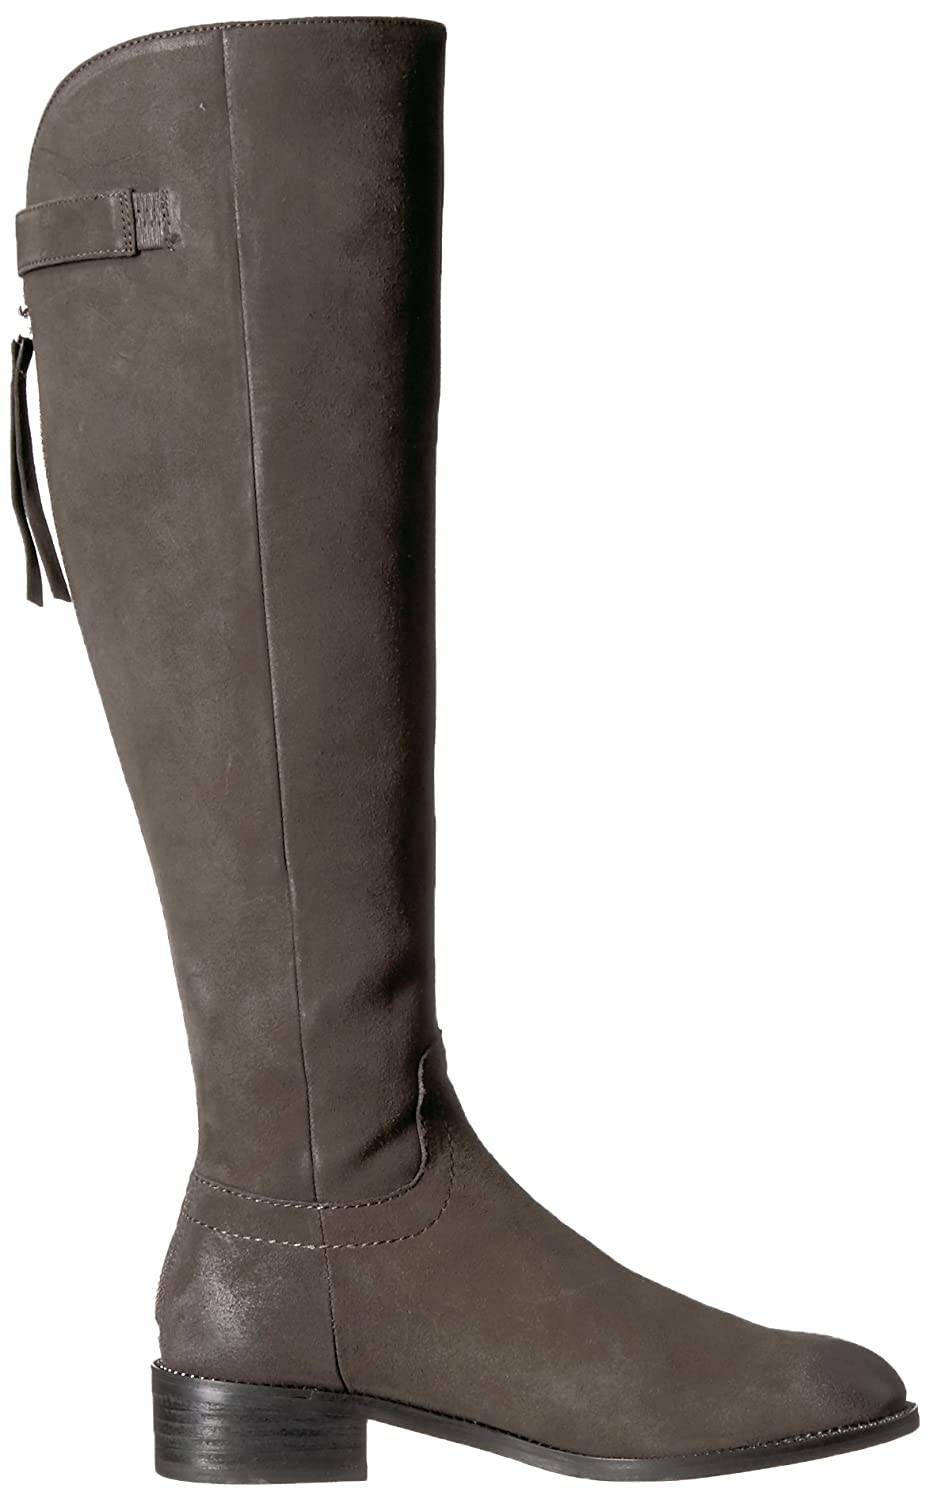 Franco Sarto Women's B0751NB31C Brindley Knee High Boot B0751NB31C Women's 6 W US|Peat 49454d